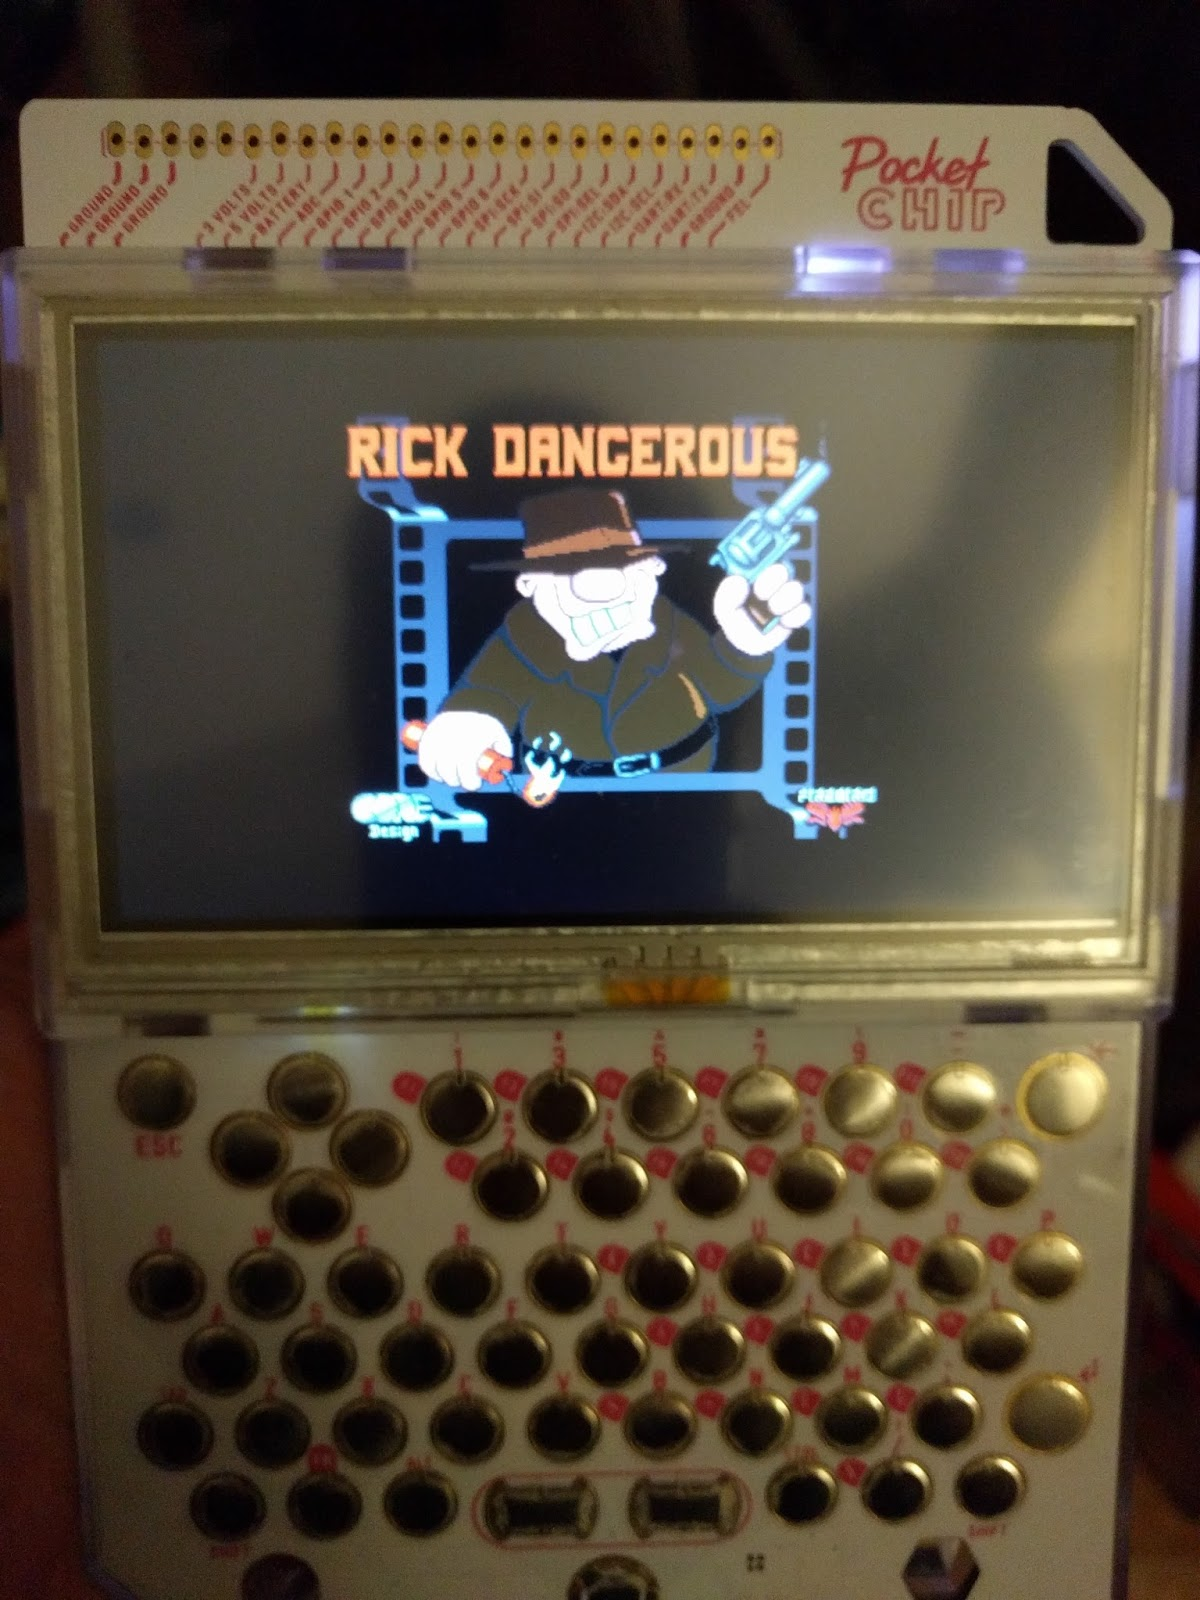 Indie Retro News: PocketCHIP Hardware Review - The perfect handheld